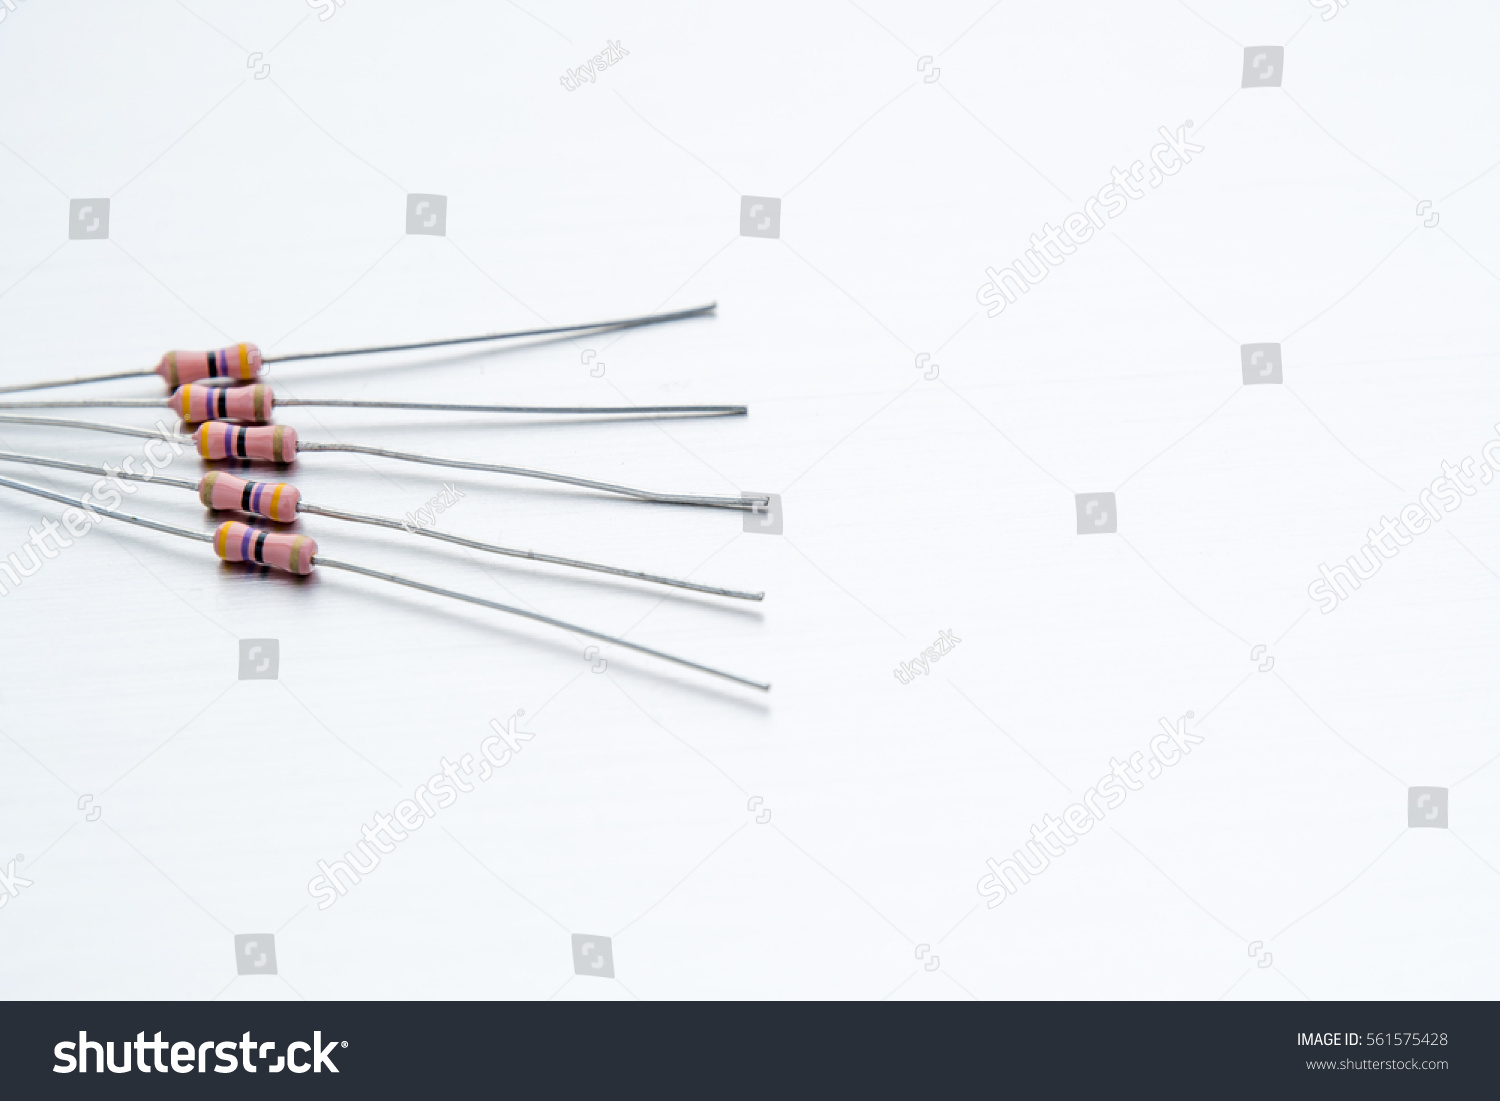 Resistor Passive Two Terminal Electrical Component Stock Photo Edit How To Reduce Voltage With Resistors For Resistance Current Flow And Lower